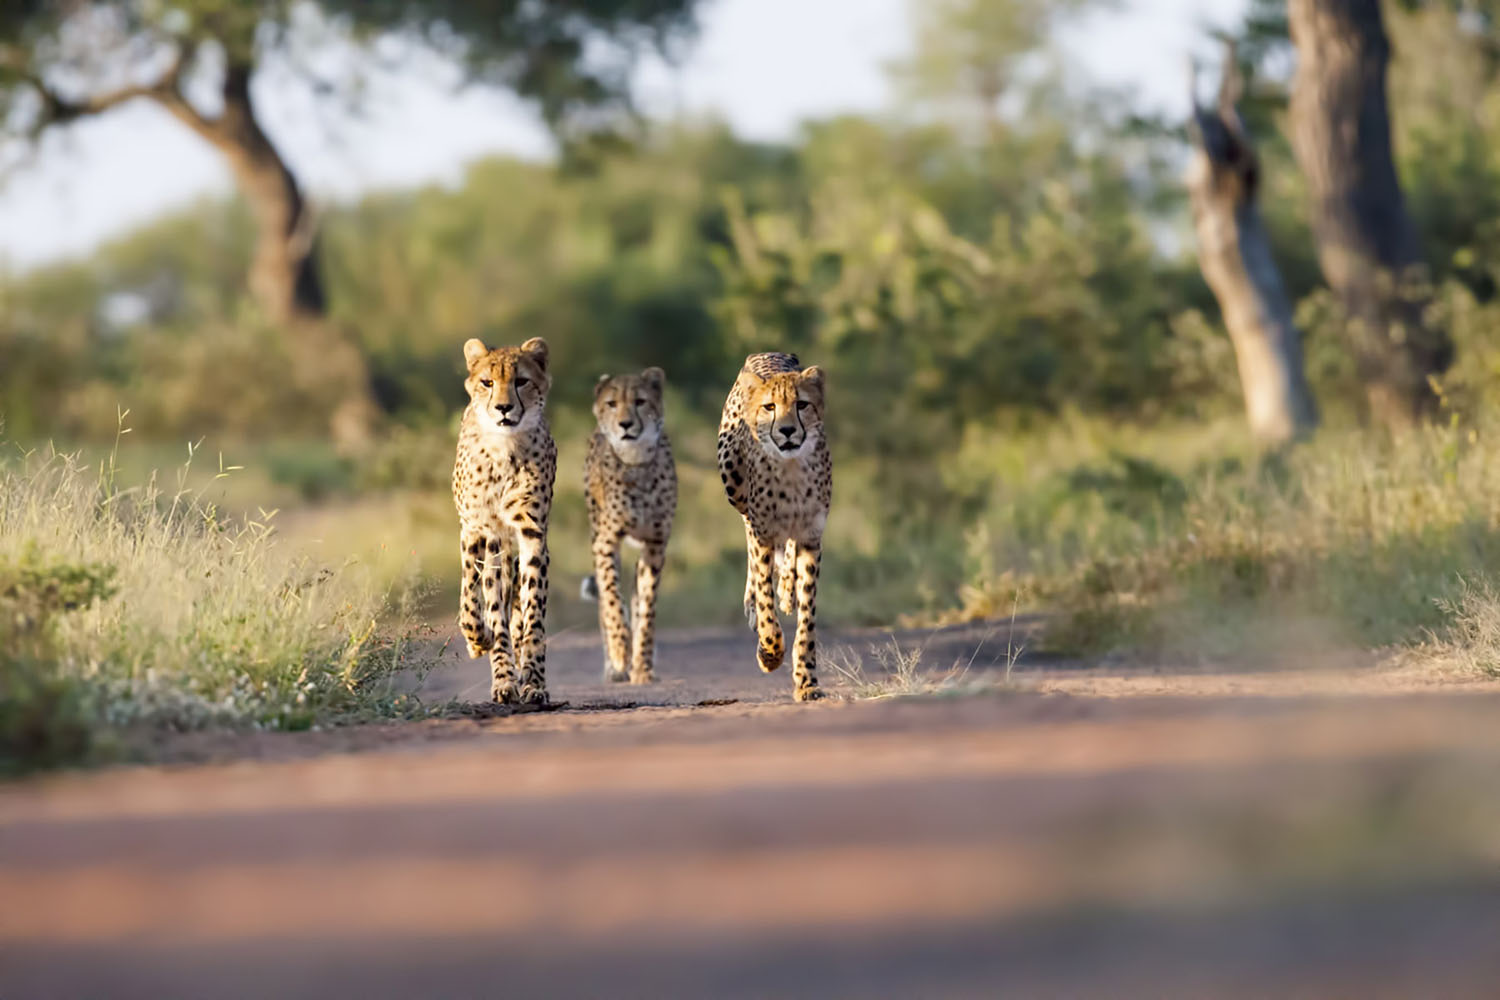 Three young Cheetahs in Kruger, South Africa